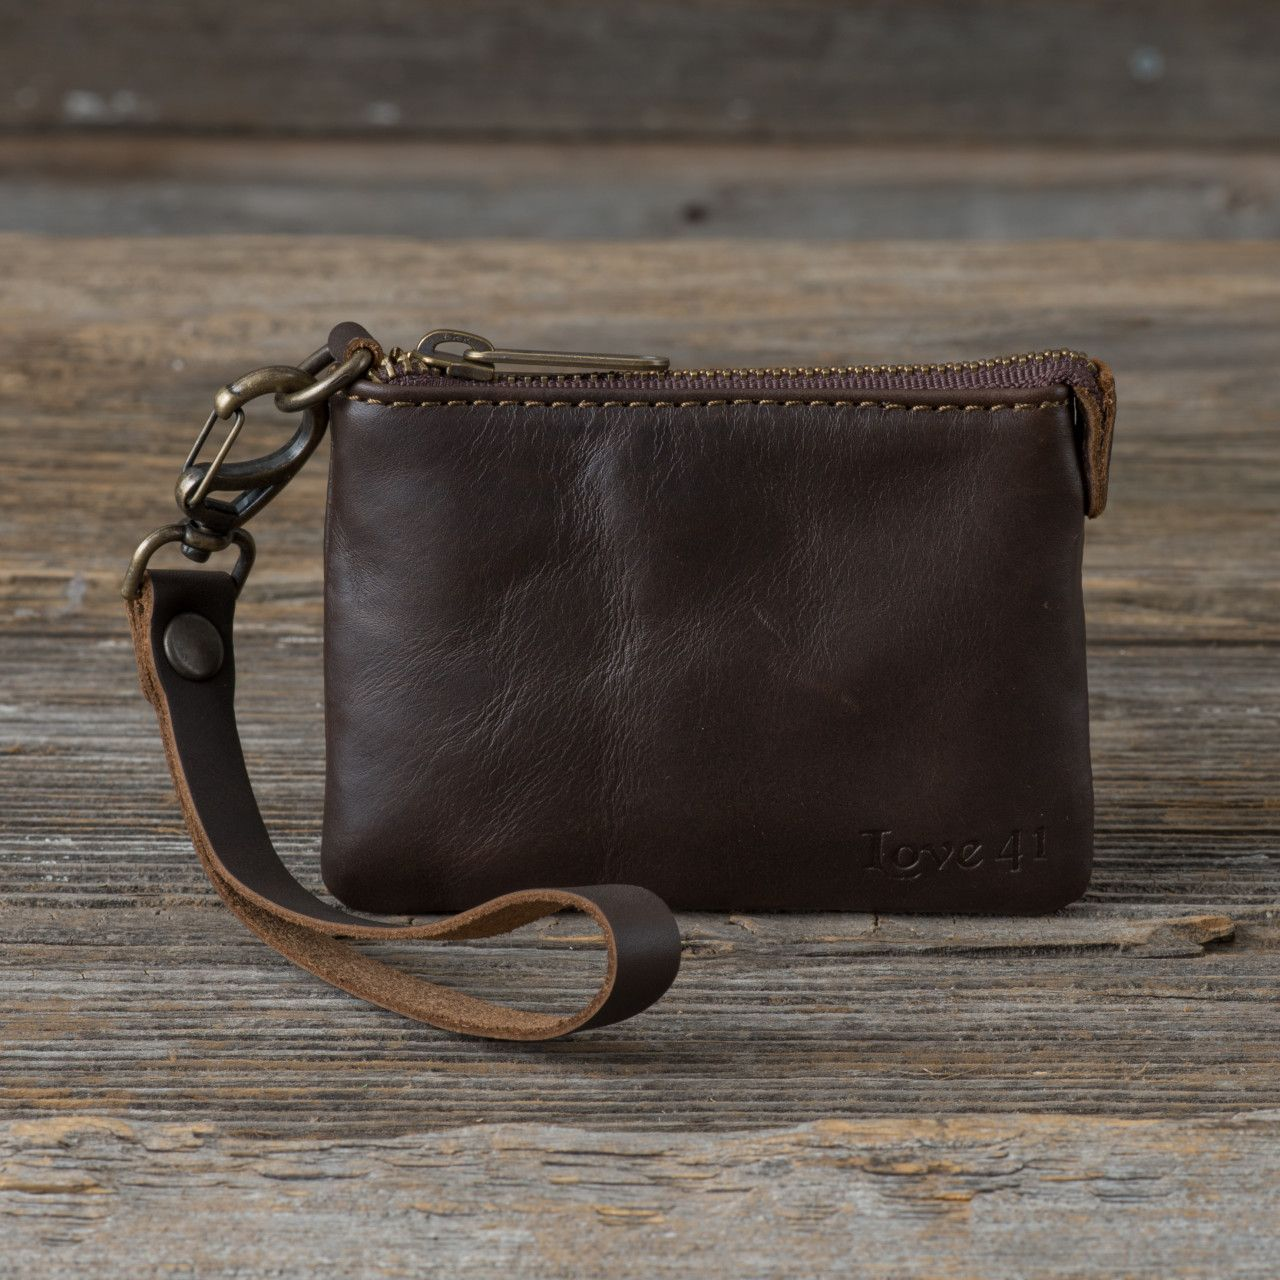 Wristlet ID wallet in dark coffee brown